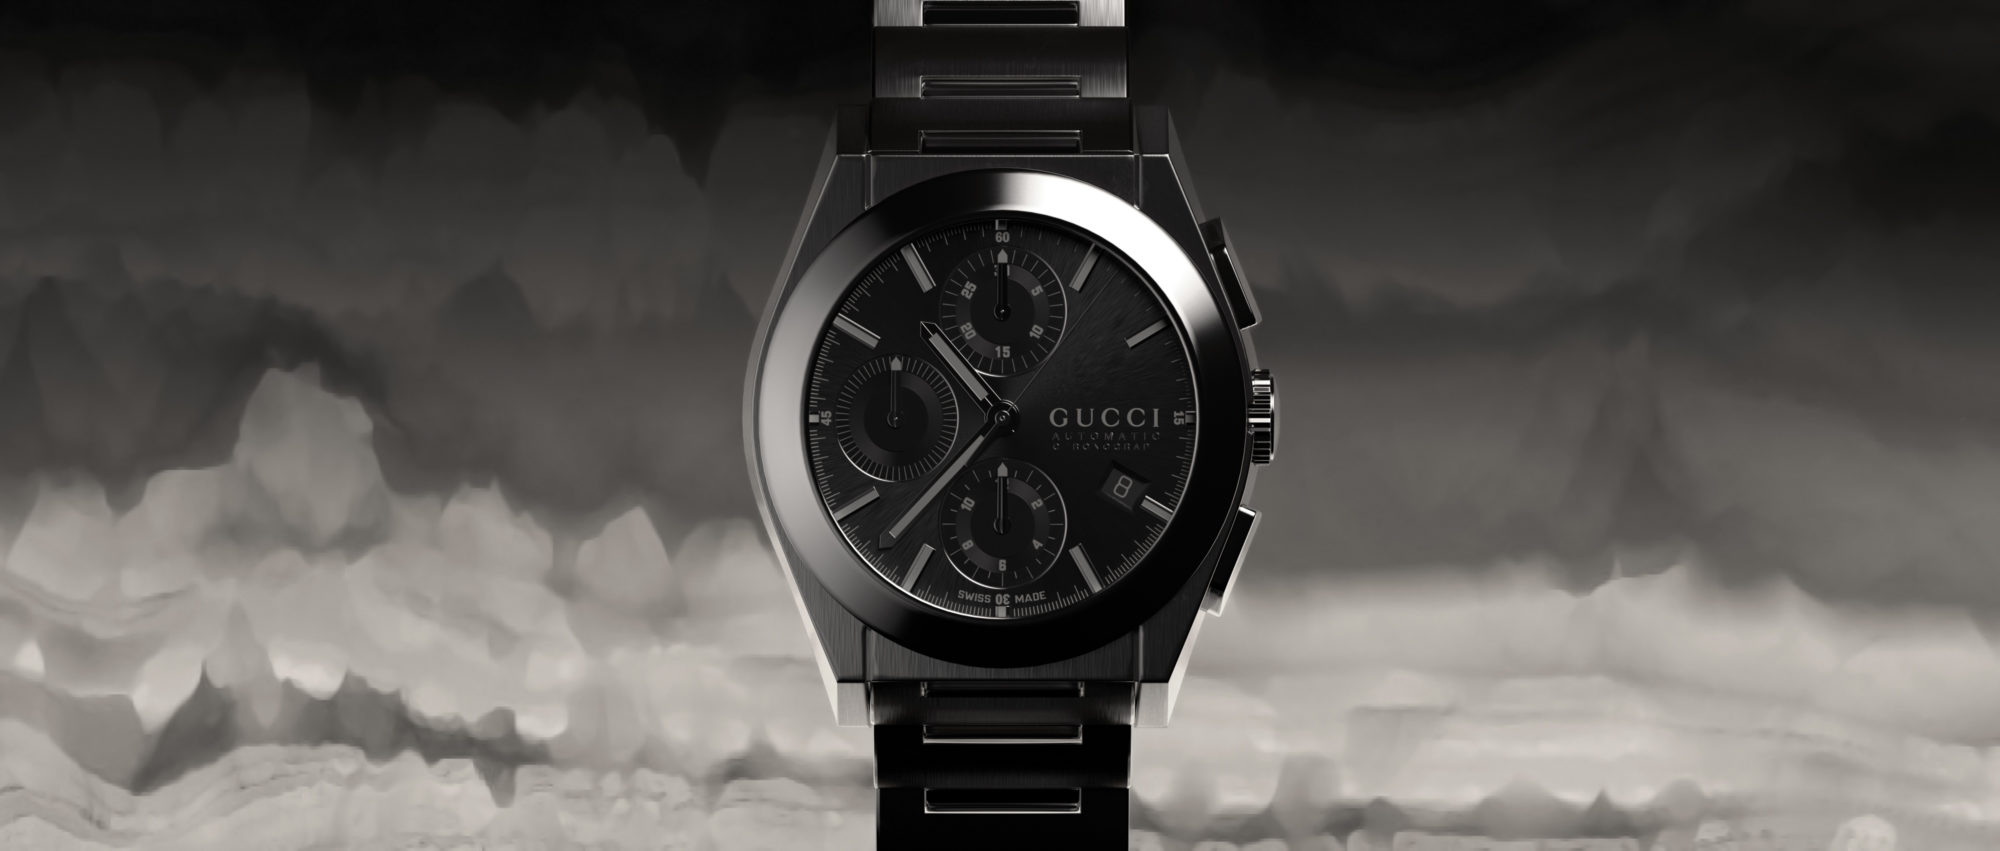 Gucci Watch Gunmetal Against Clouds